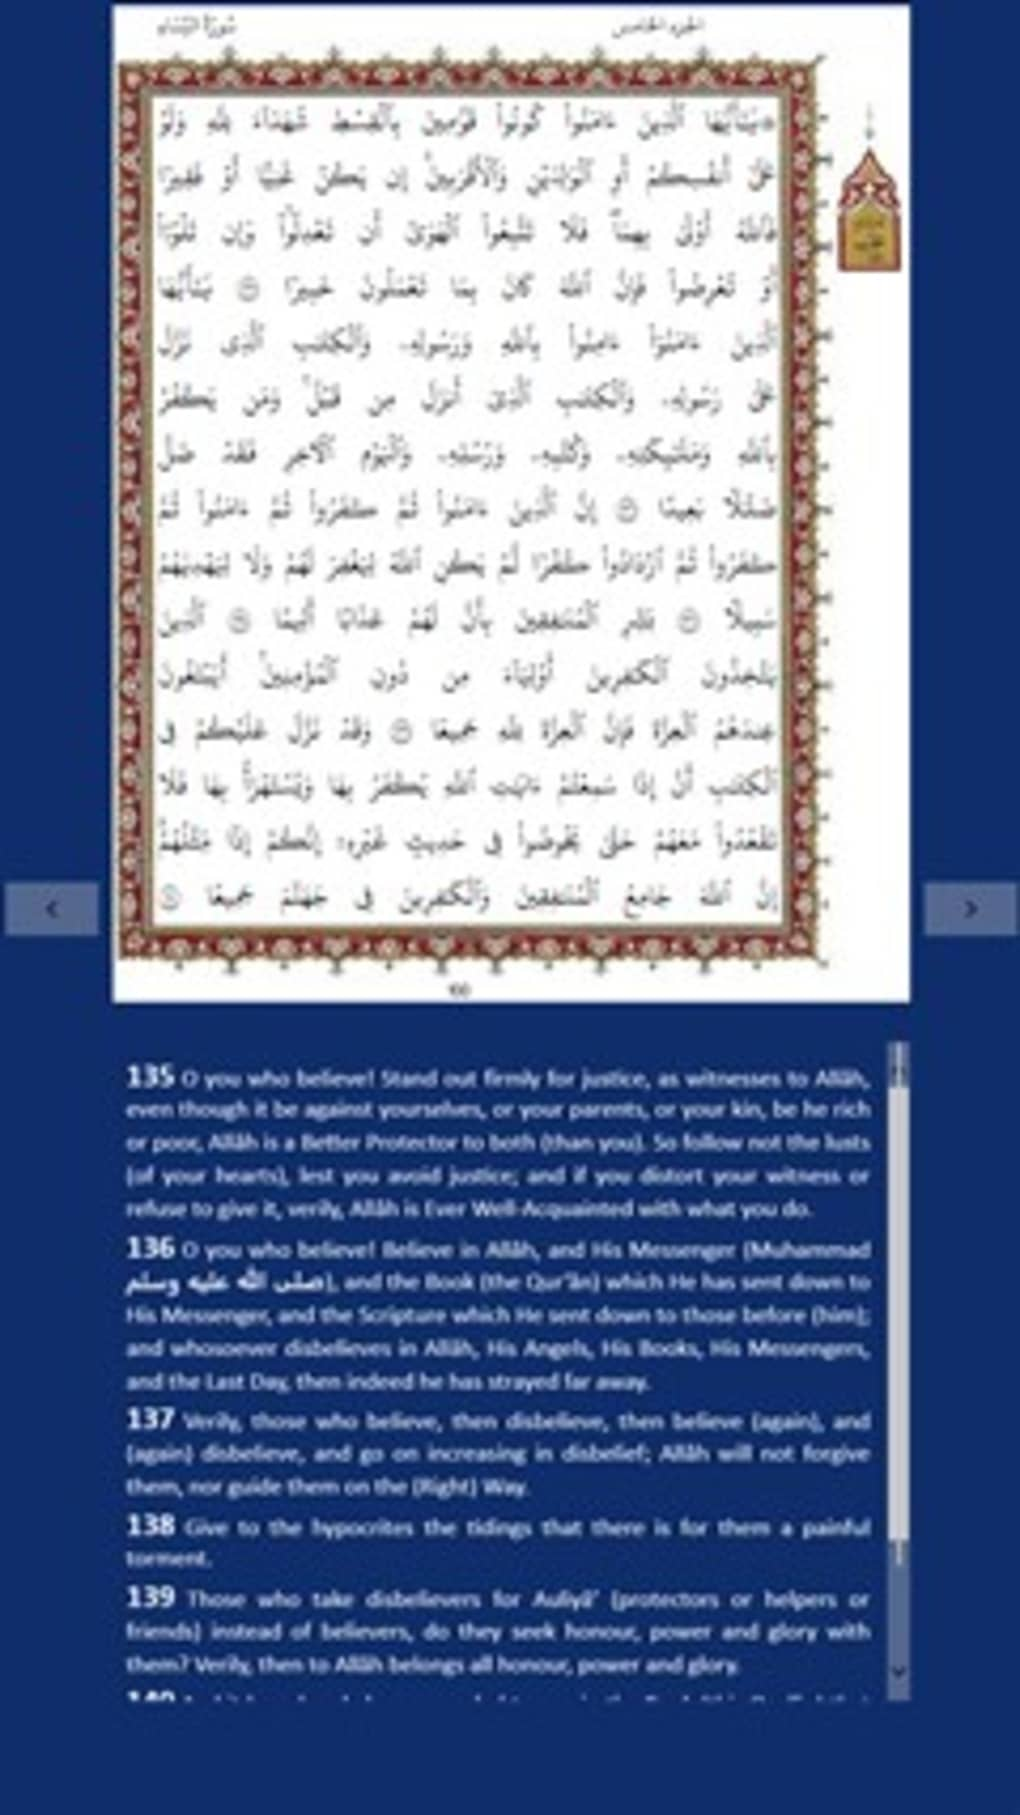 Holy Quran for Windows 10 (Windows) - Download